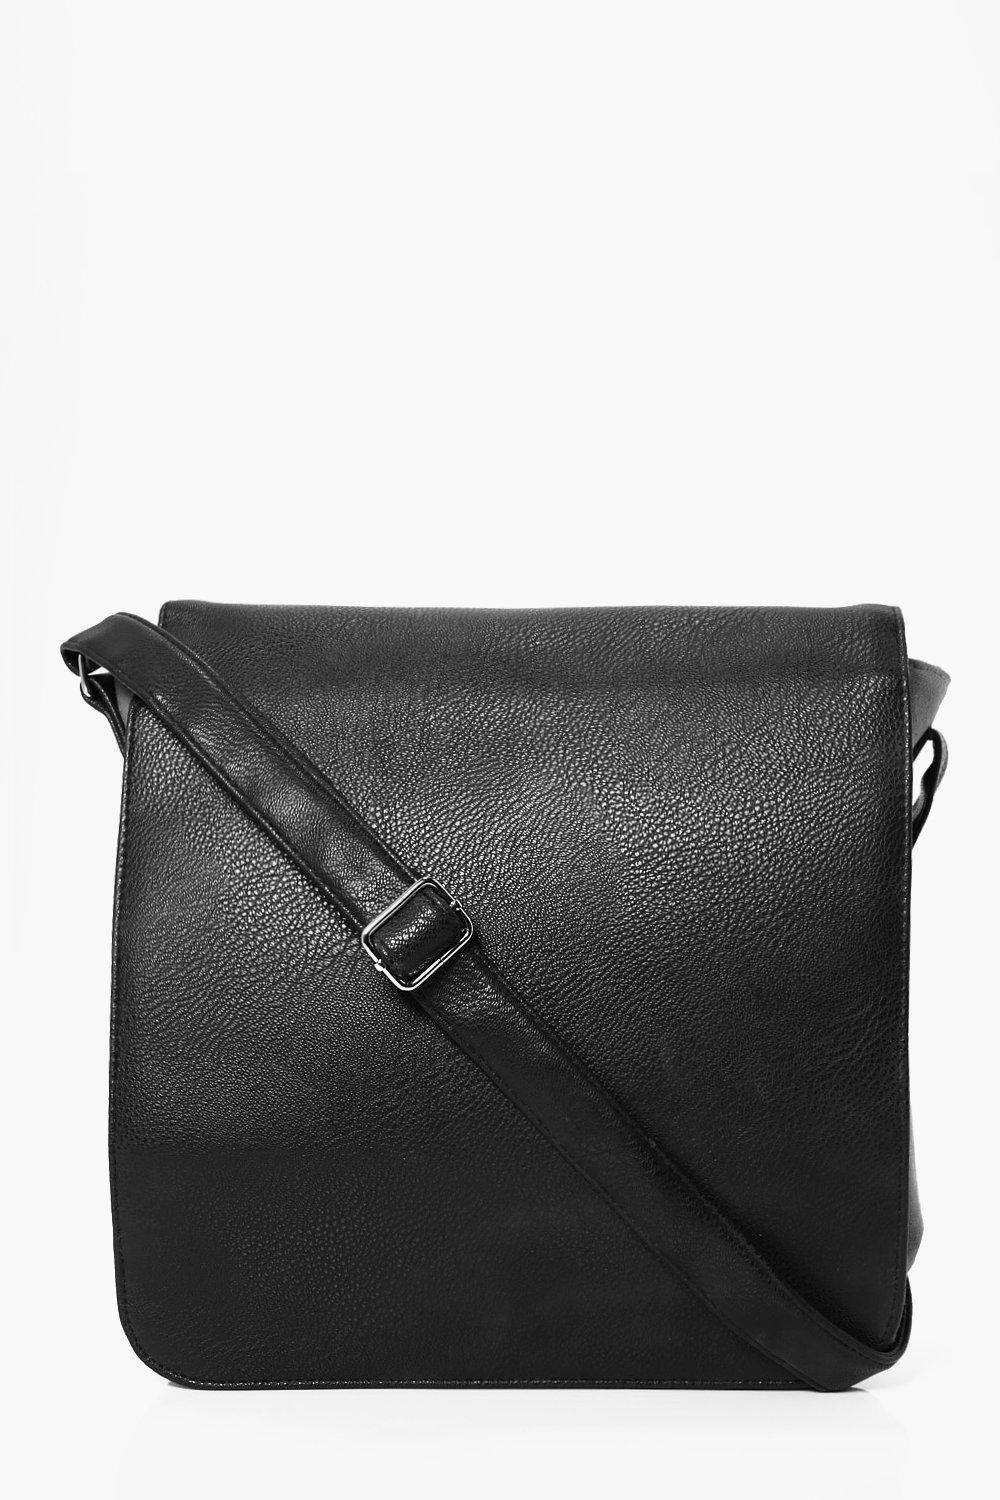 And PU MAN Bag - black - Canvas And PU MAN Bag - b